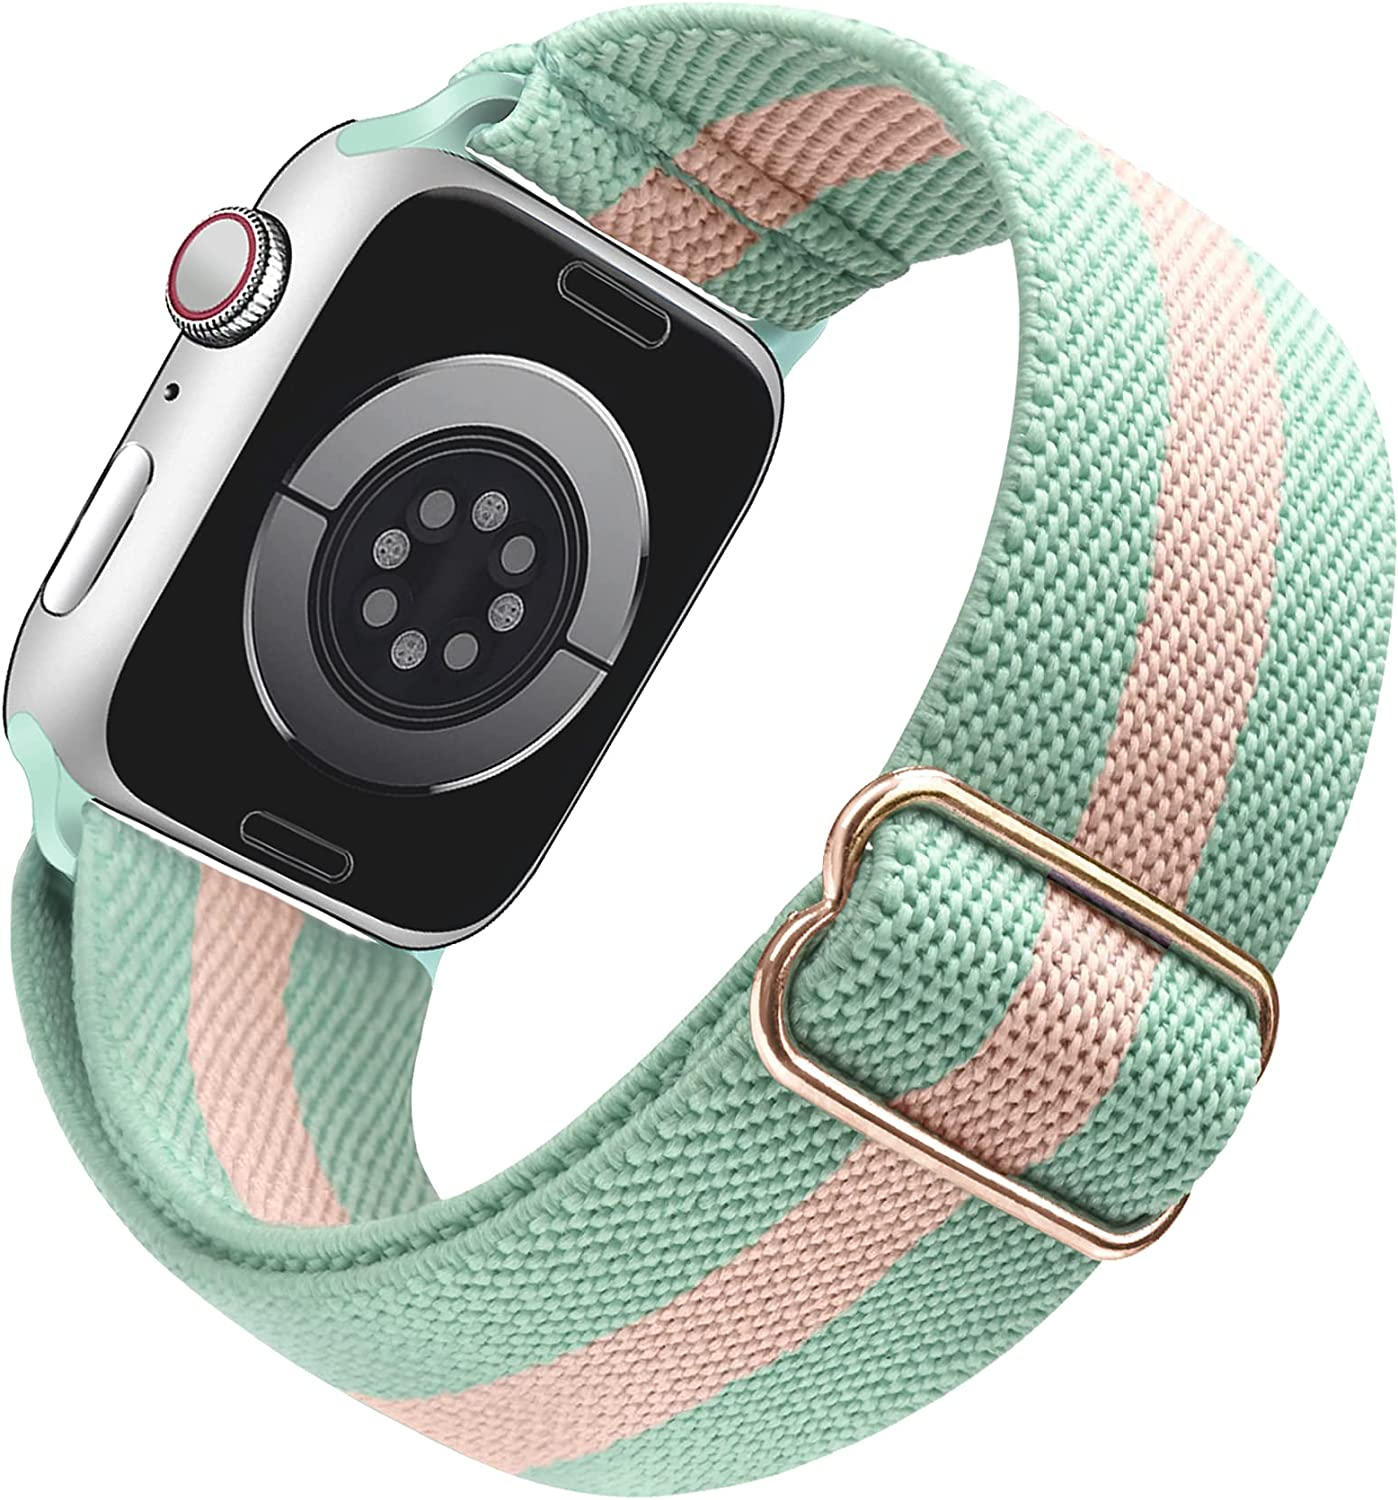 Arae Stretchy Watch Band Compatible for Apple Watch Band 41mm 40mm 38mm Comfortable Adjustable Sport Band for iWatch Series 7 6 5 4 SE 3 2 1 Women Men - Green